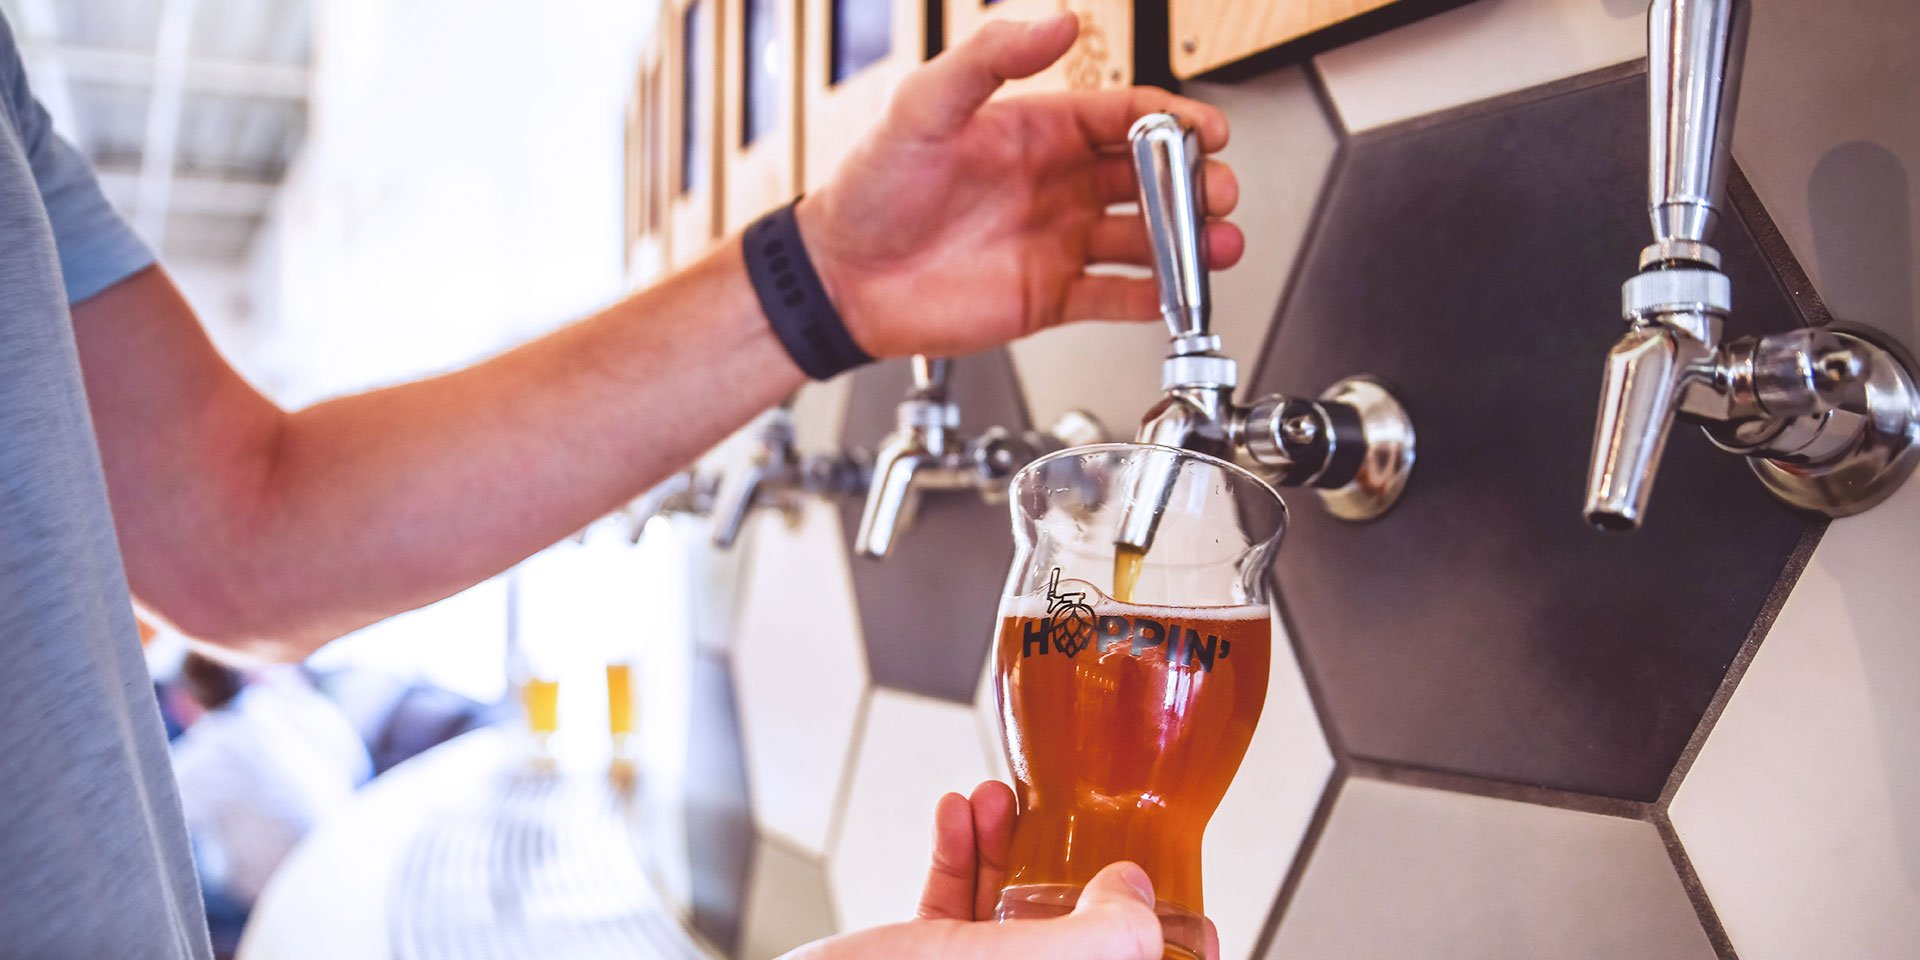 hoppin' self-pour taproom ipourit